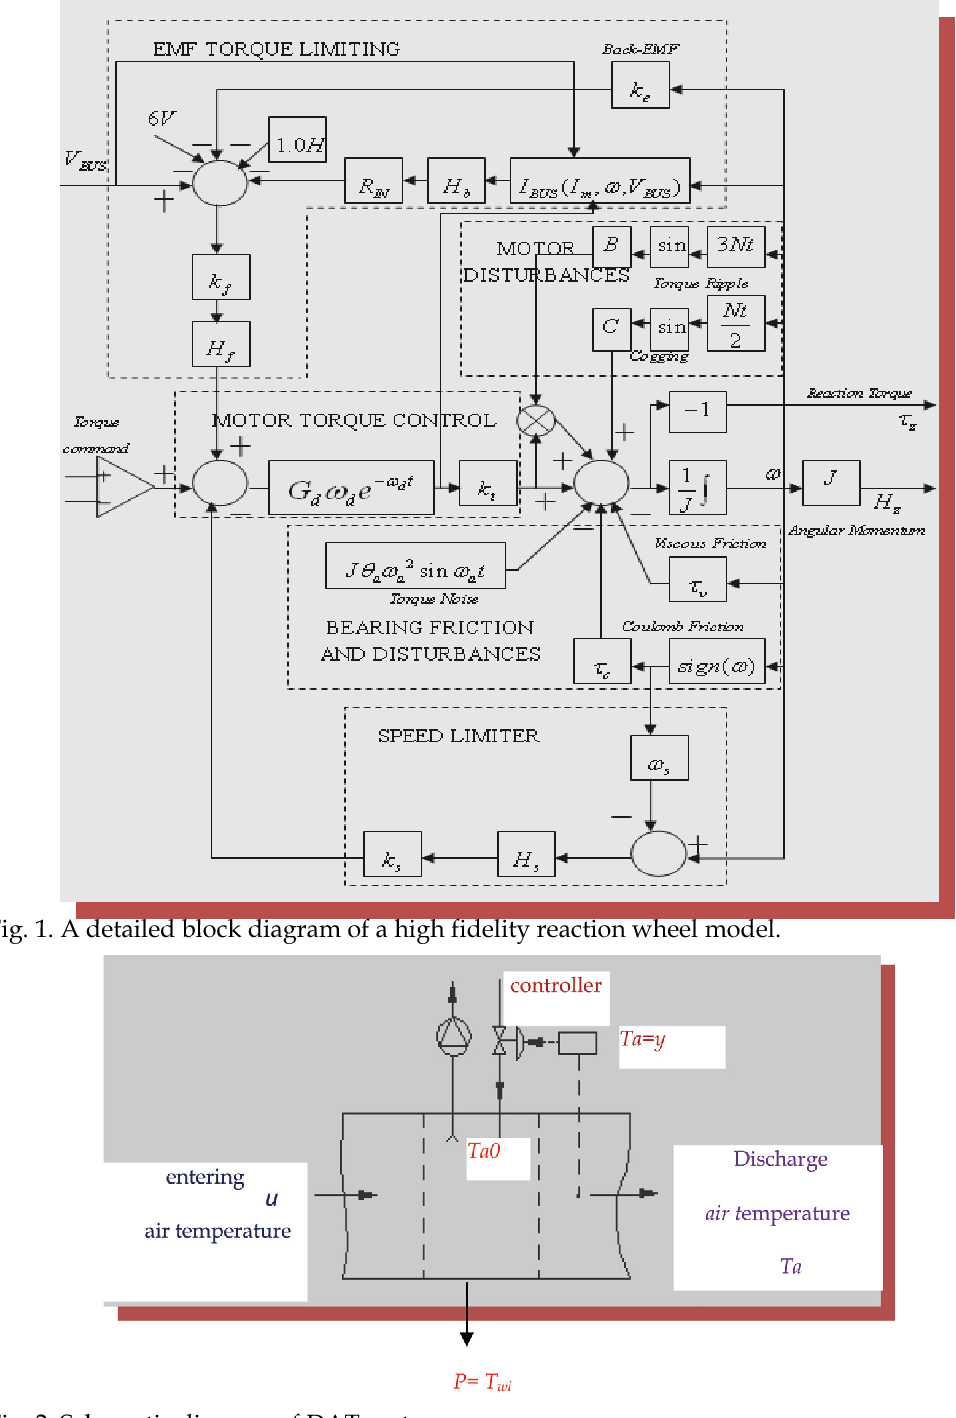 A detailed block diagram of a high fidelity reaction wheel model.